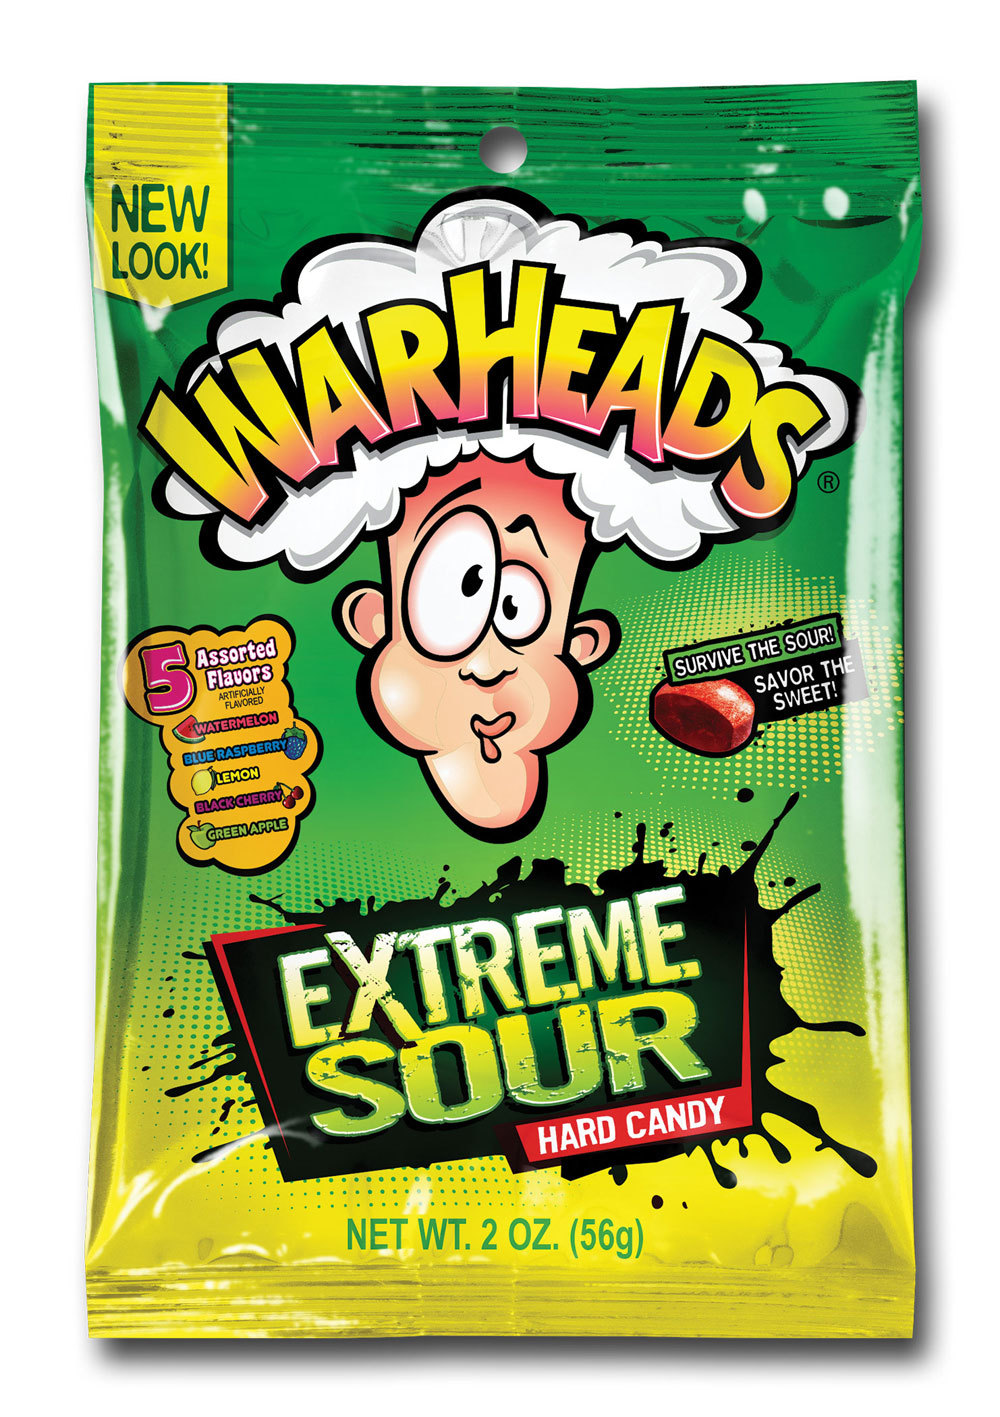 Warheads Extreme Sour Hard Candy (56g) image